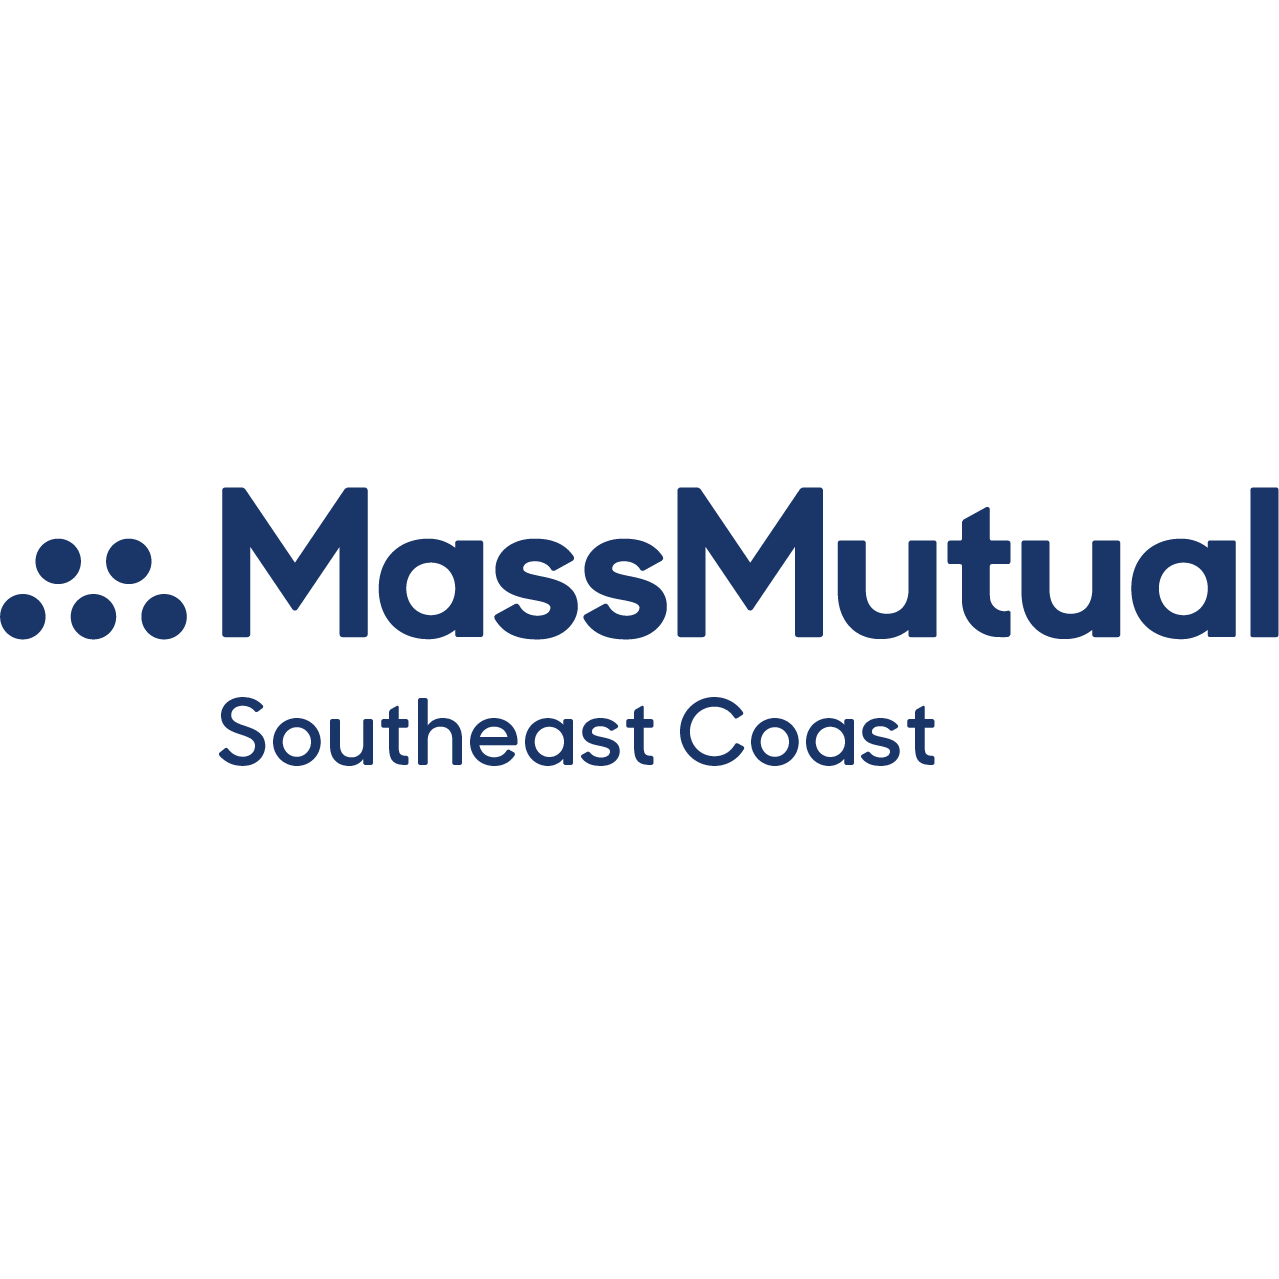 MassMutual Southeast Coast